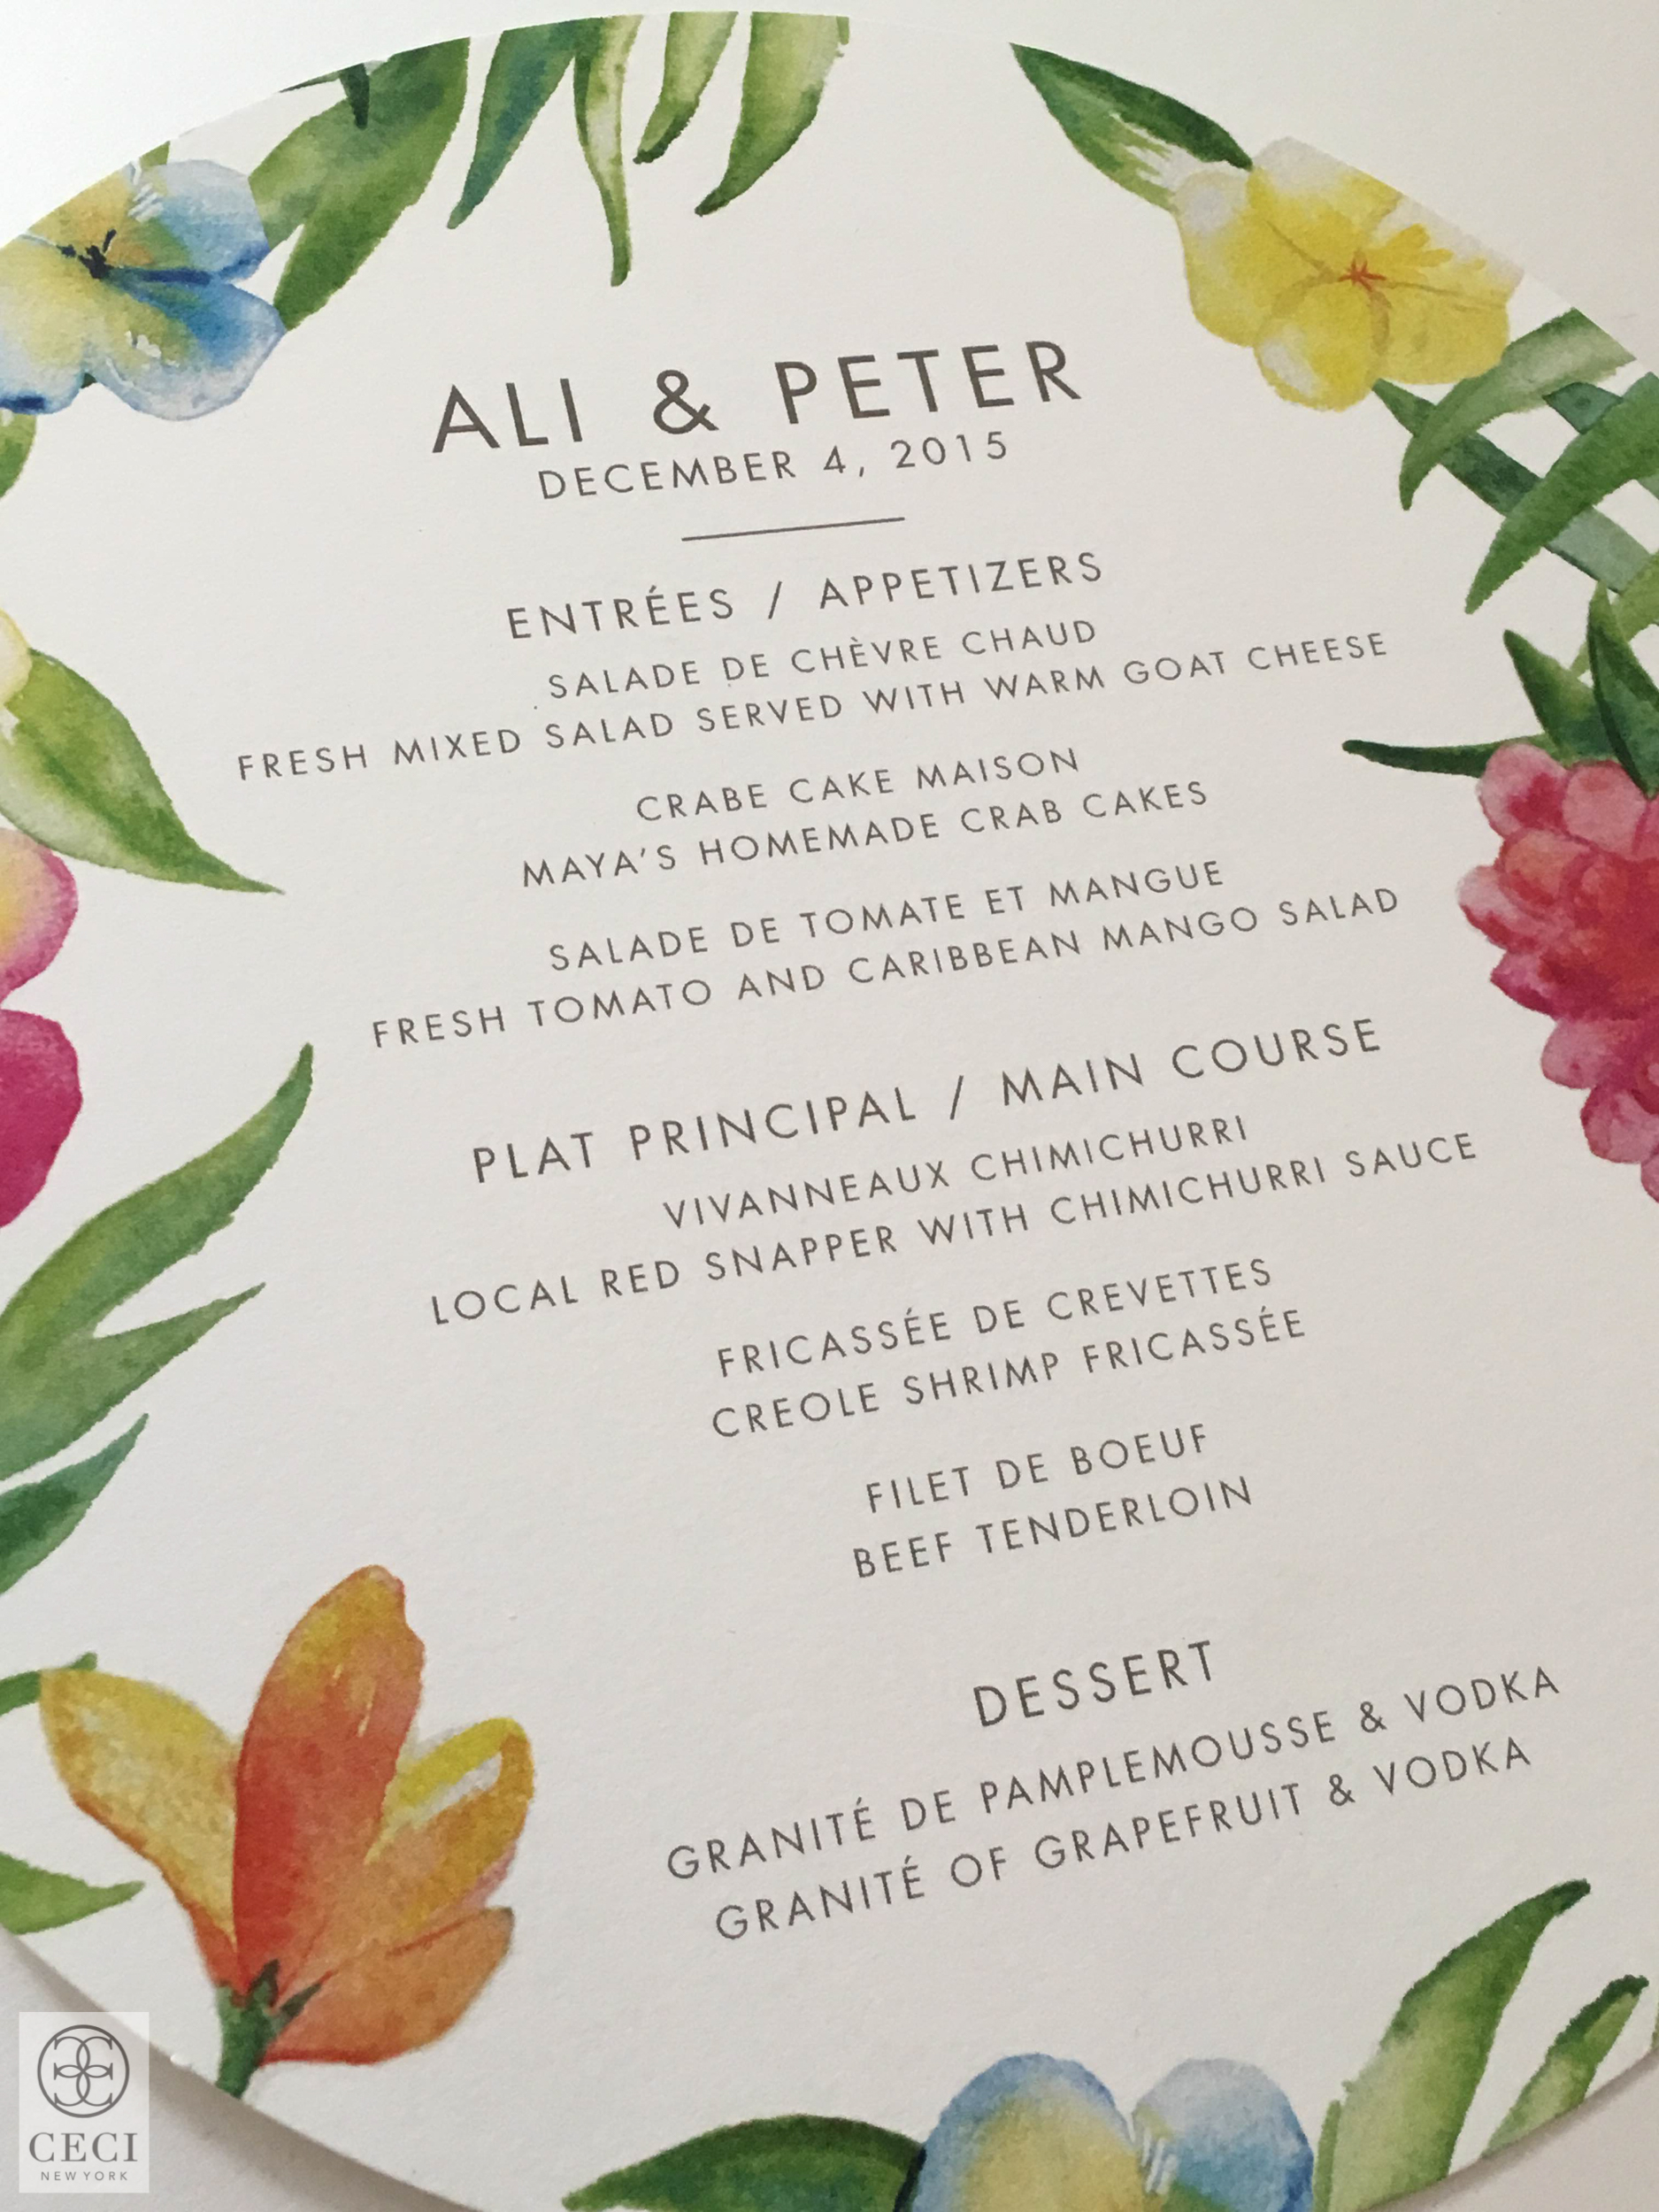 Ceci_New_York_Ceci_Style_Ceci_Johnson_Luxury_Lifestyle_Destination_St._Barts_Wedding_Letterpress_Watercolor_Floral_Hand_Painted_Inspiration_Design_Custom_Couture_Personalized_Invitations_-11.jpg